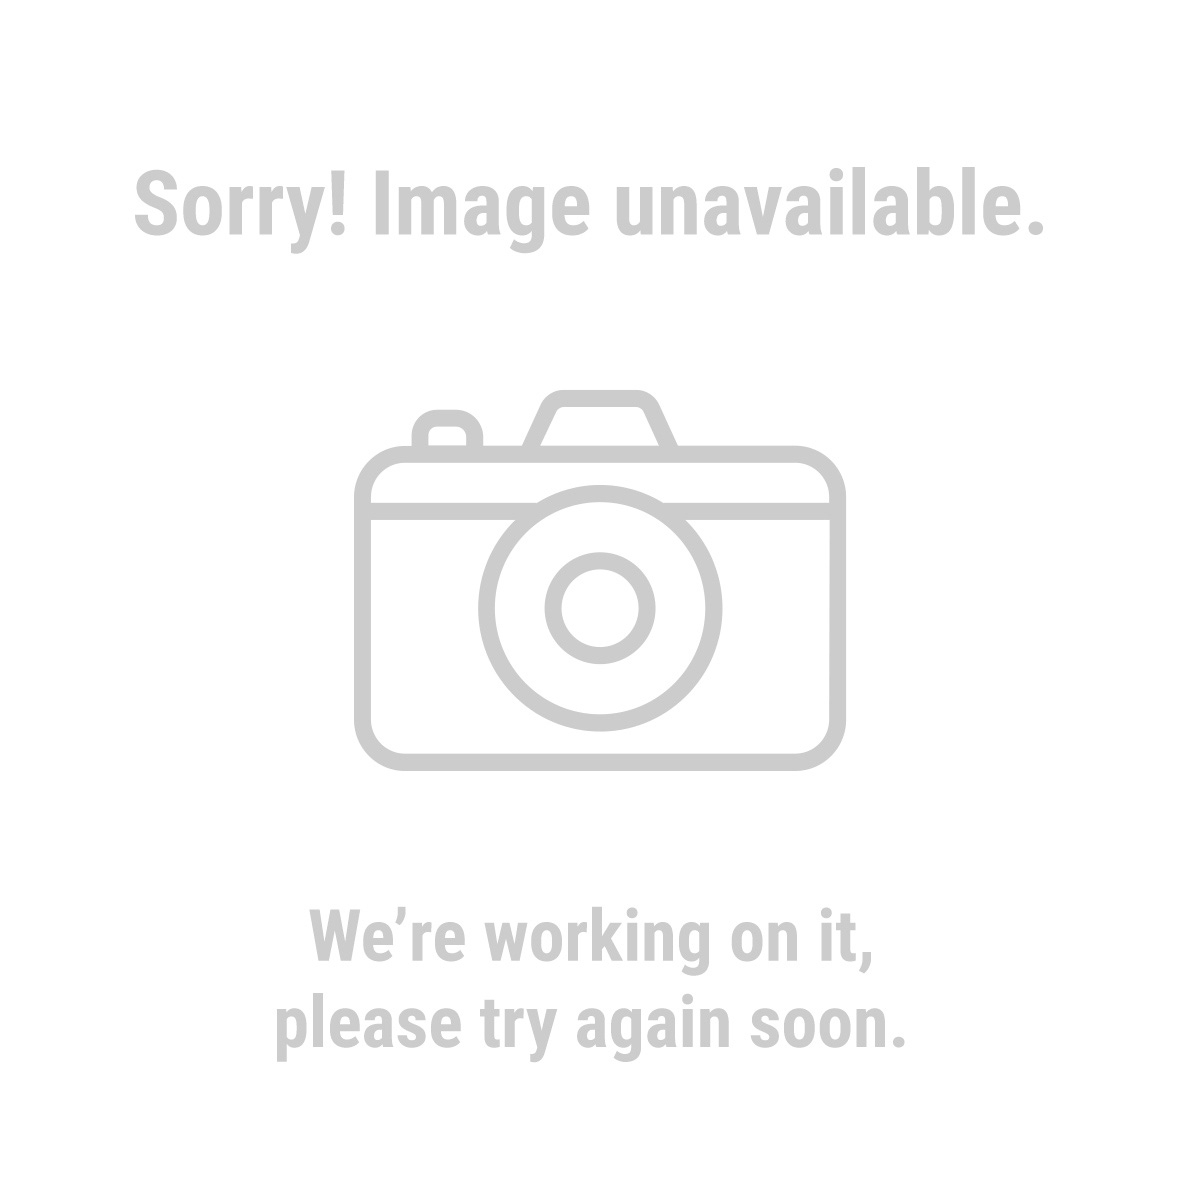 Western Safety Gloves 93641 Mechanic's Gloves, X-Large